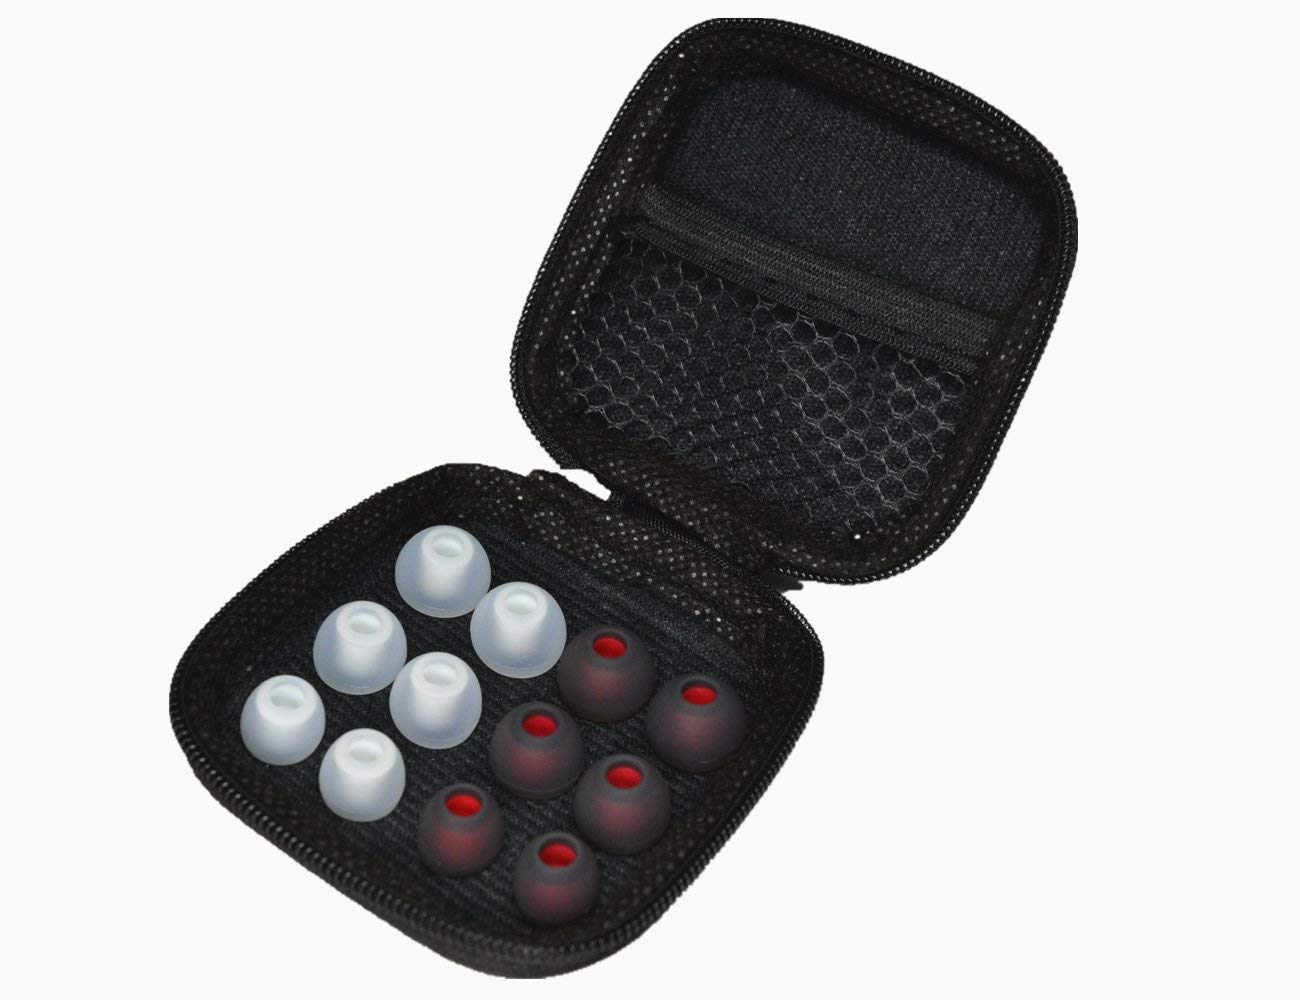 Silicone Headphone Tips Replacement ( Black-red /Clear Color,Each of 3 pairs), with the Black Earphone Carrying Case